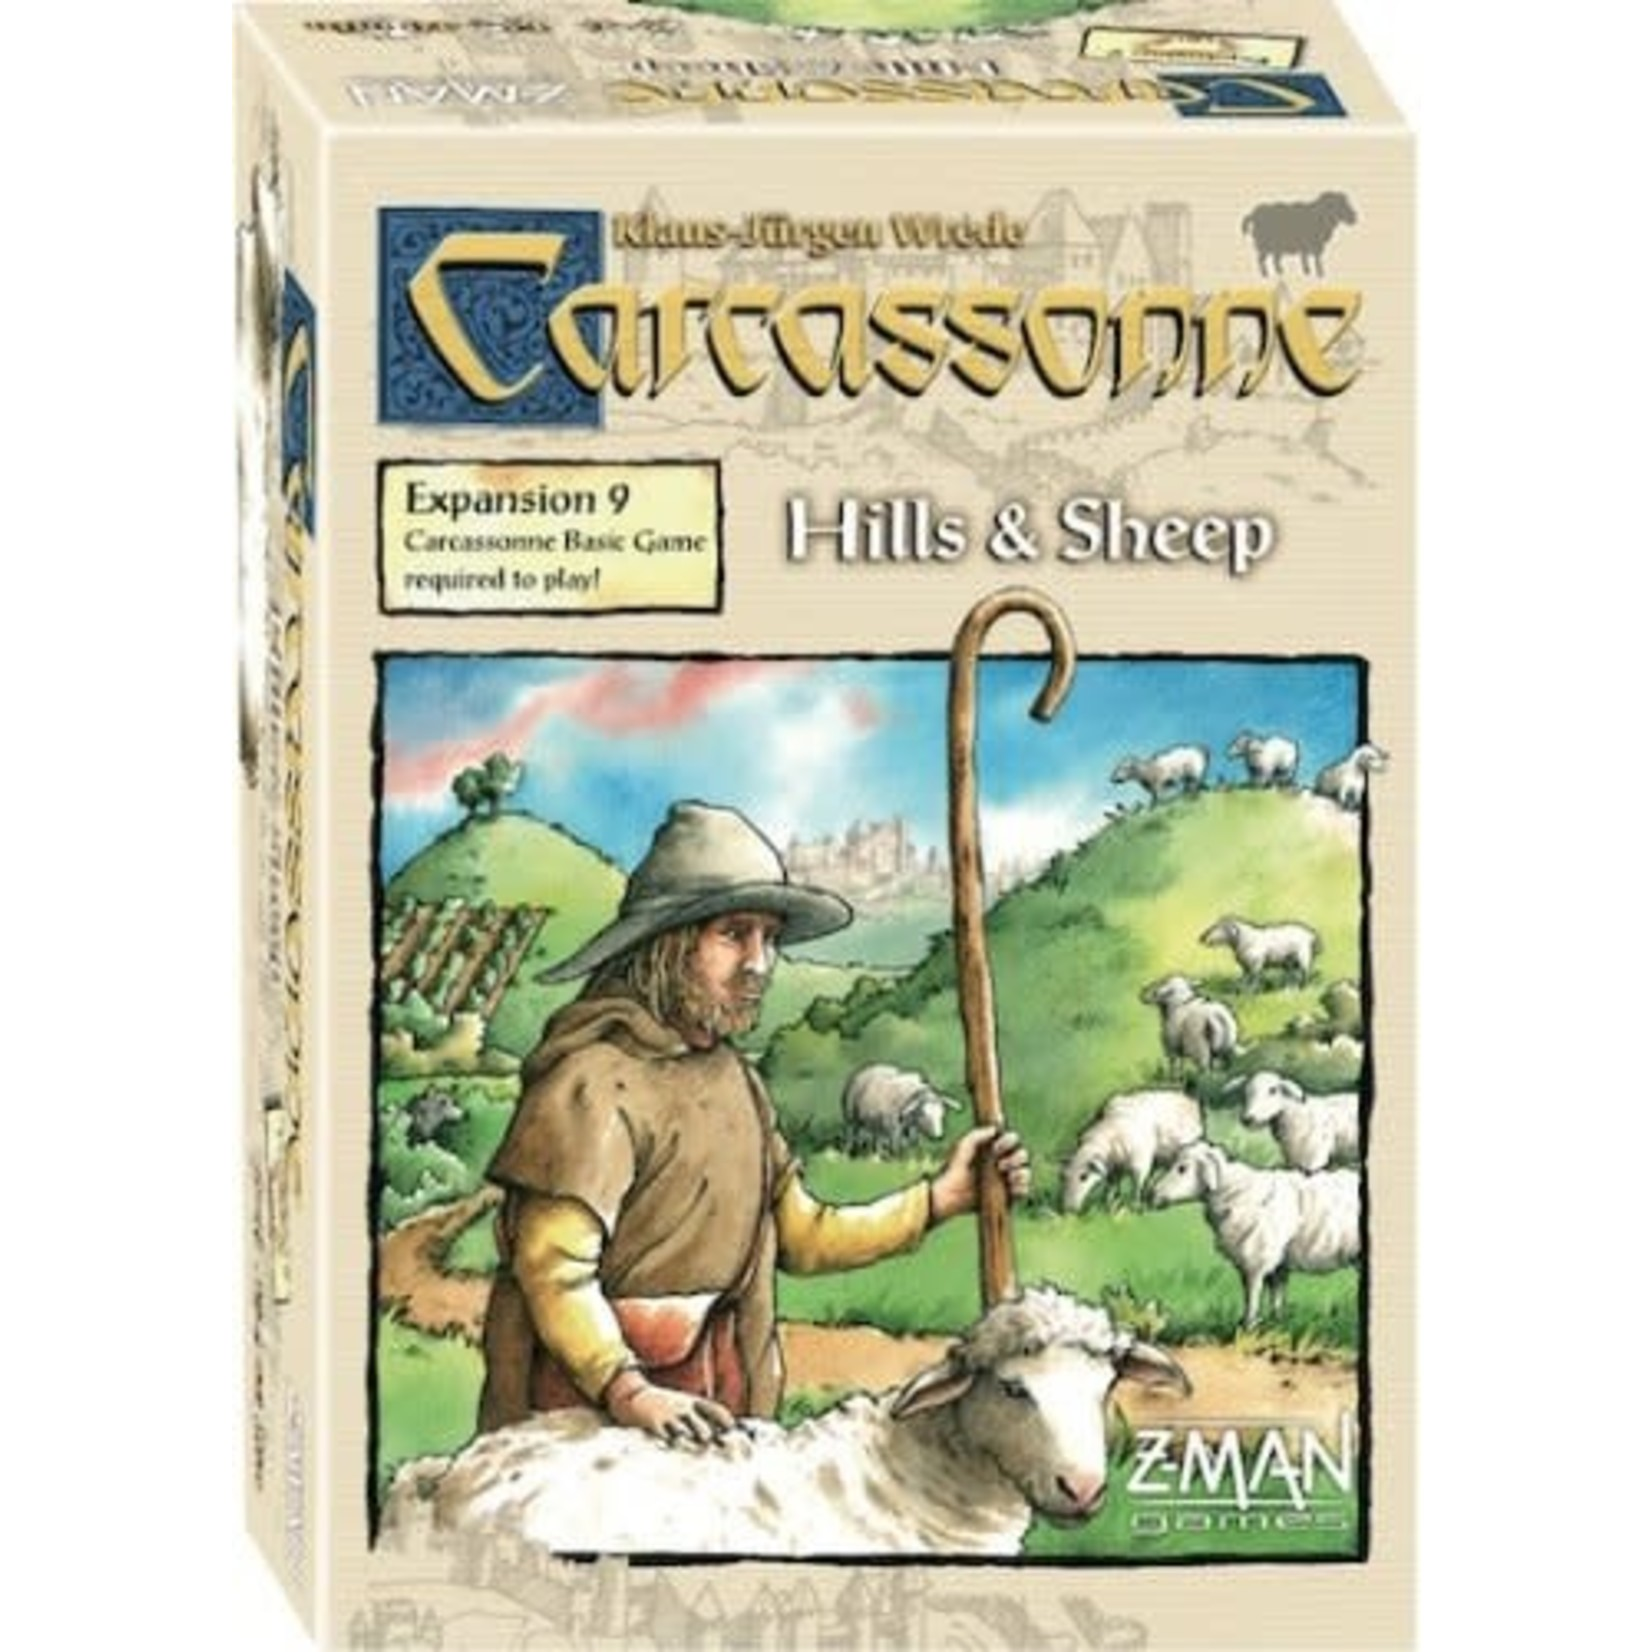 ZMan Games Carcassonne Expansion 9: Hills and Sheep